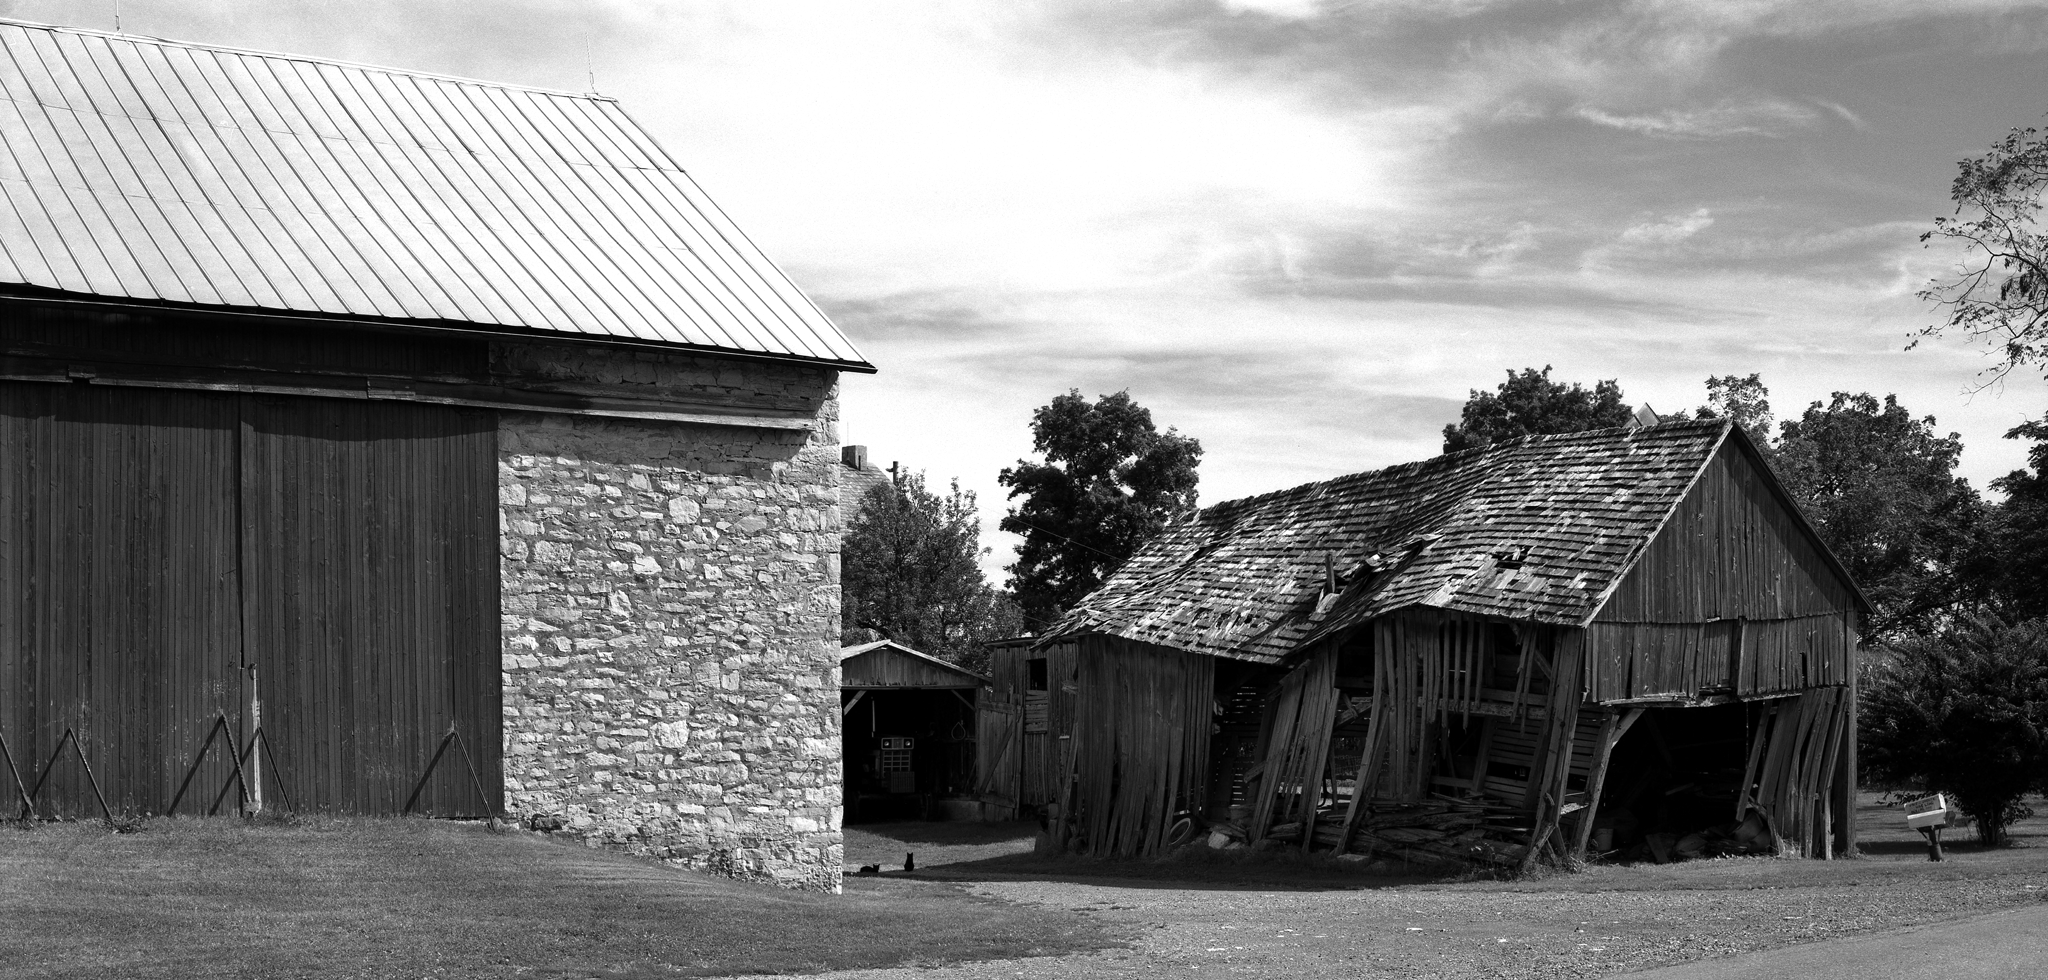 4x5_for_365_project_0279_Oley_falling_barn.png